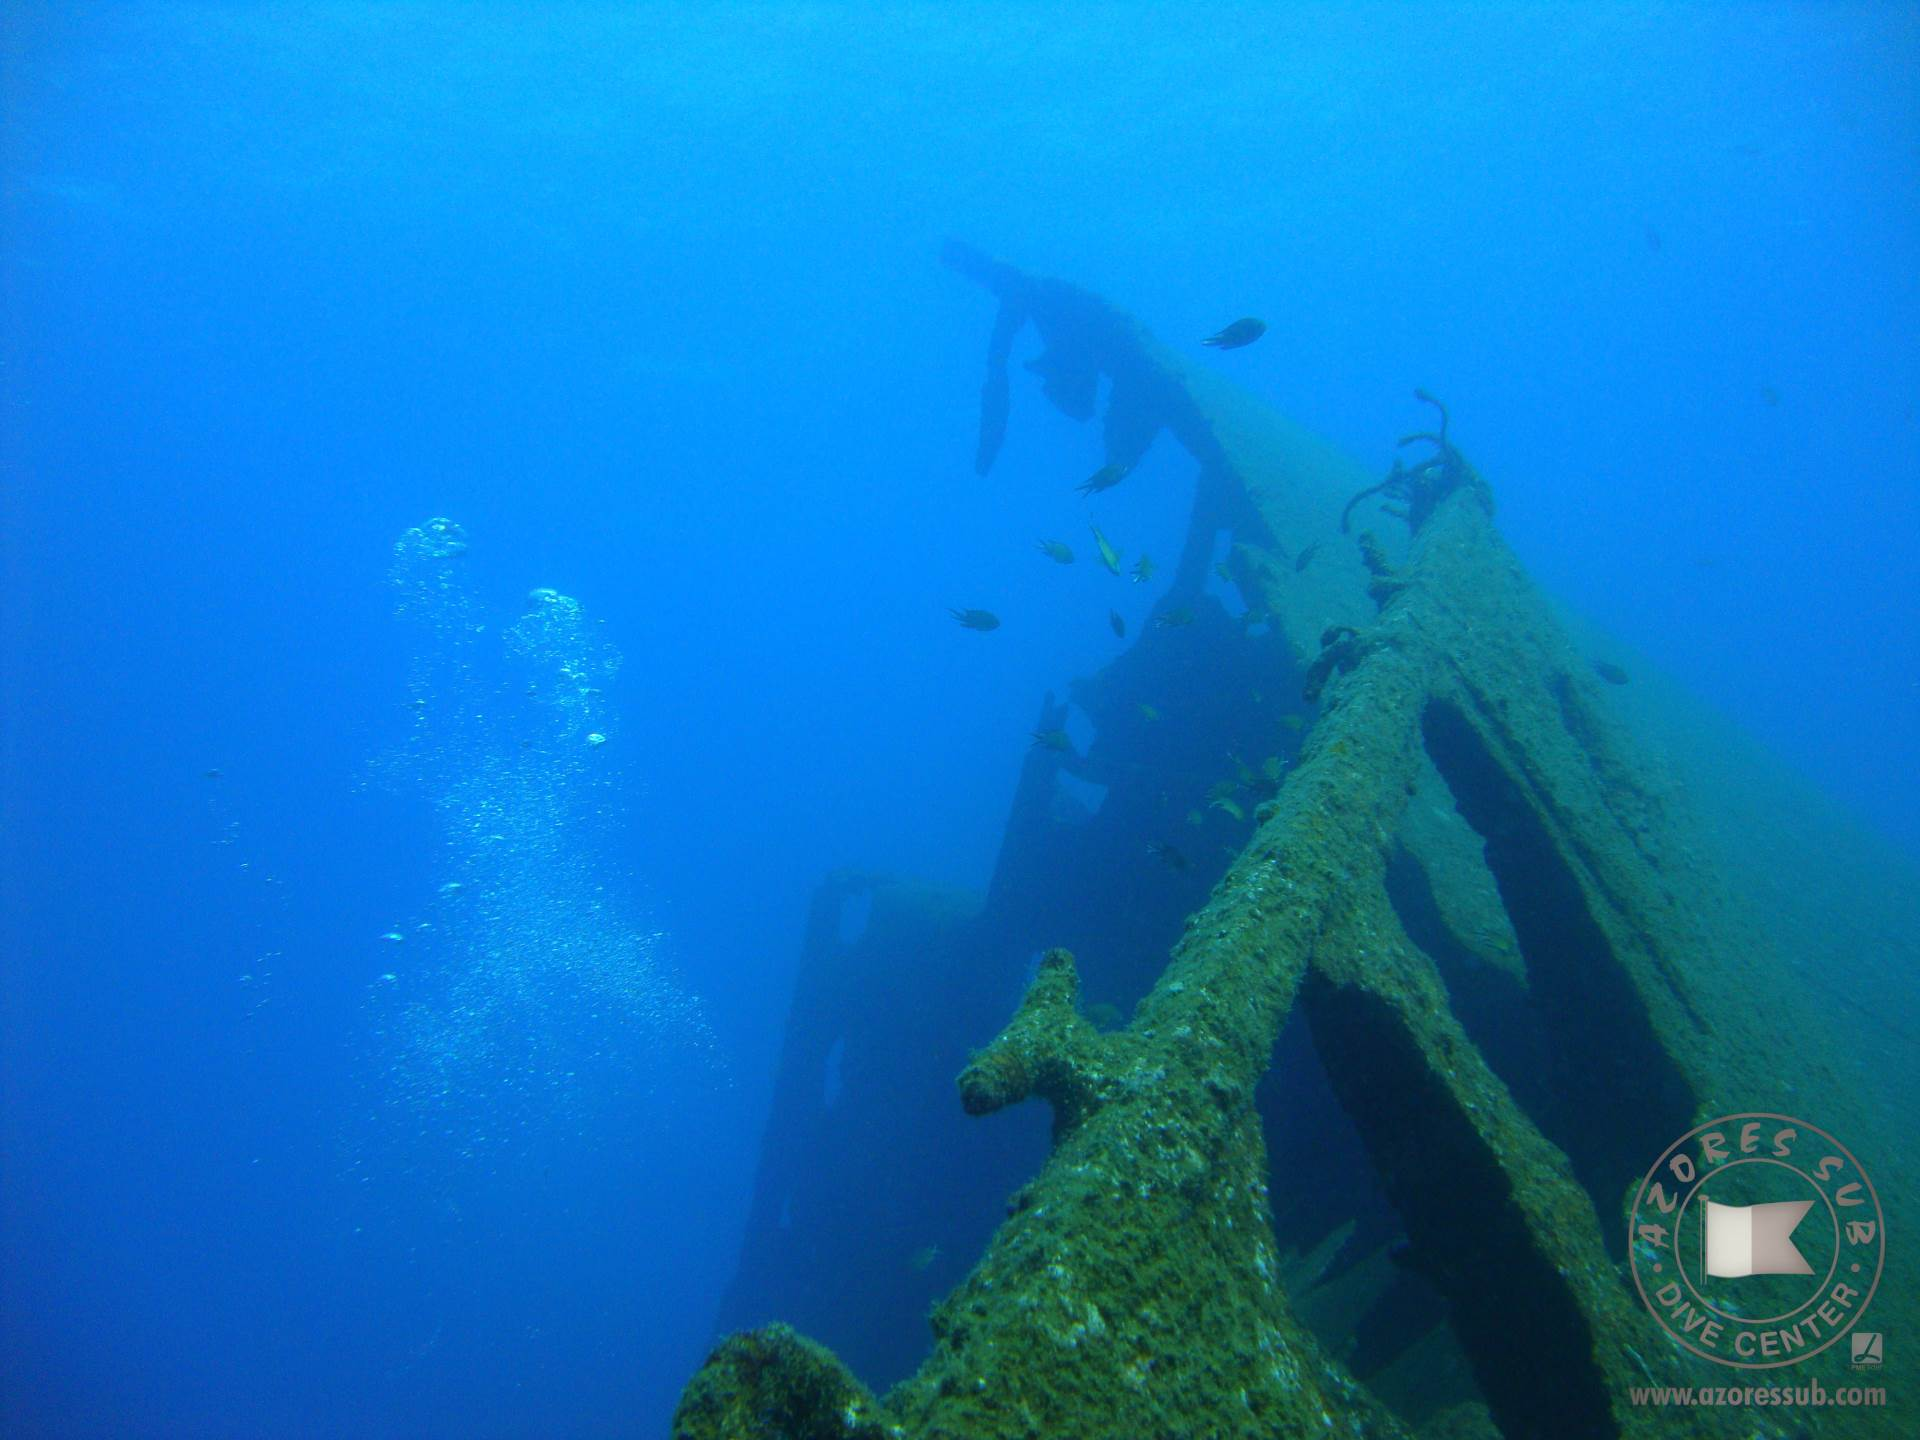 You are looking to a wreck, a Liberty Ship from II World War call DORI, during a dive trip with Azores Sub Dive Center.